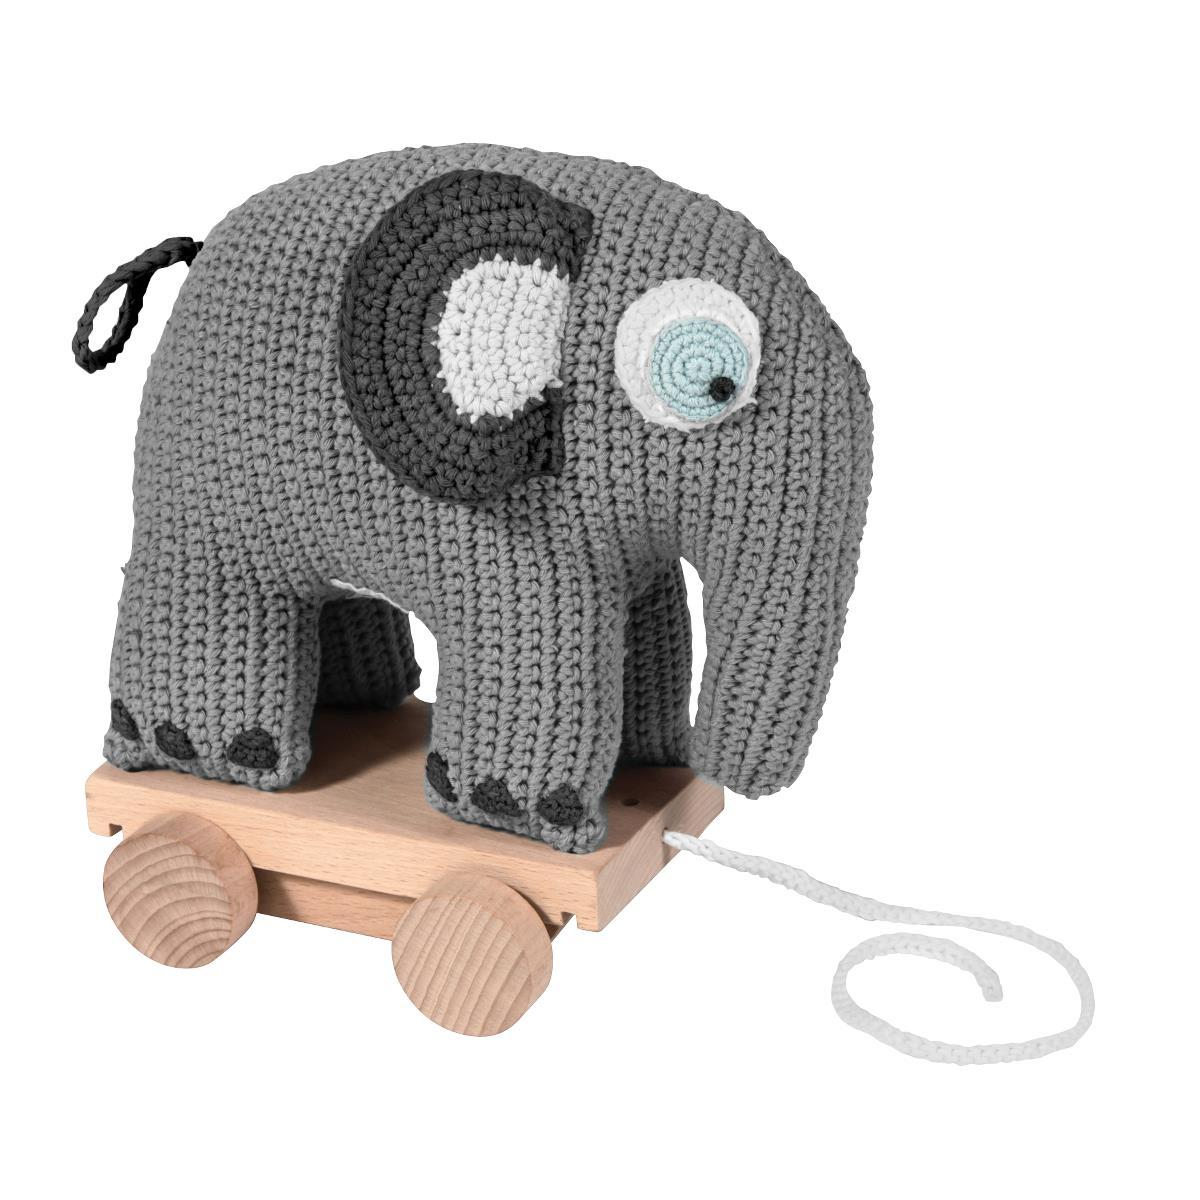 Sebra Crochet Pull-Along Toy - Fanto The Elephant - huggle